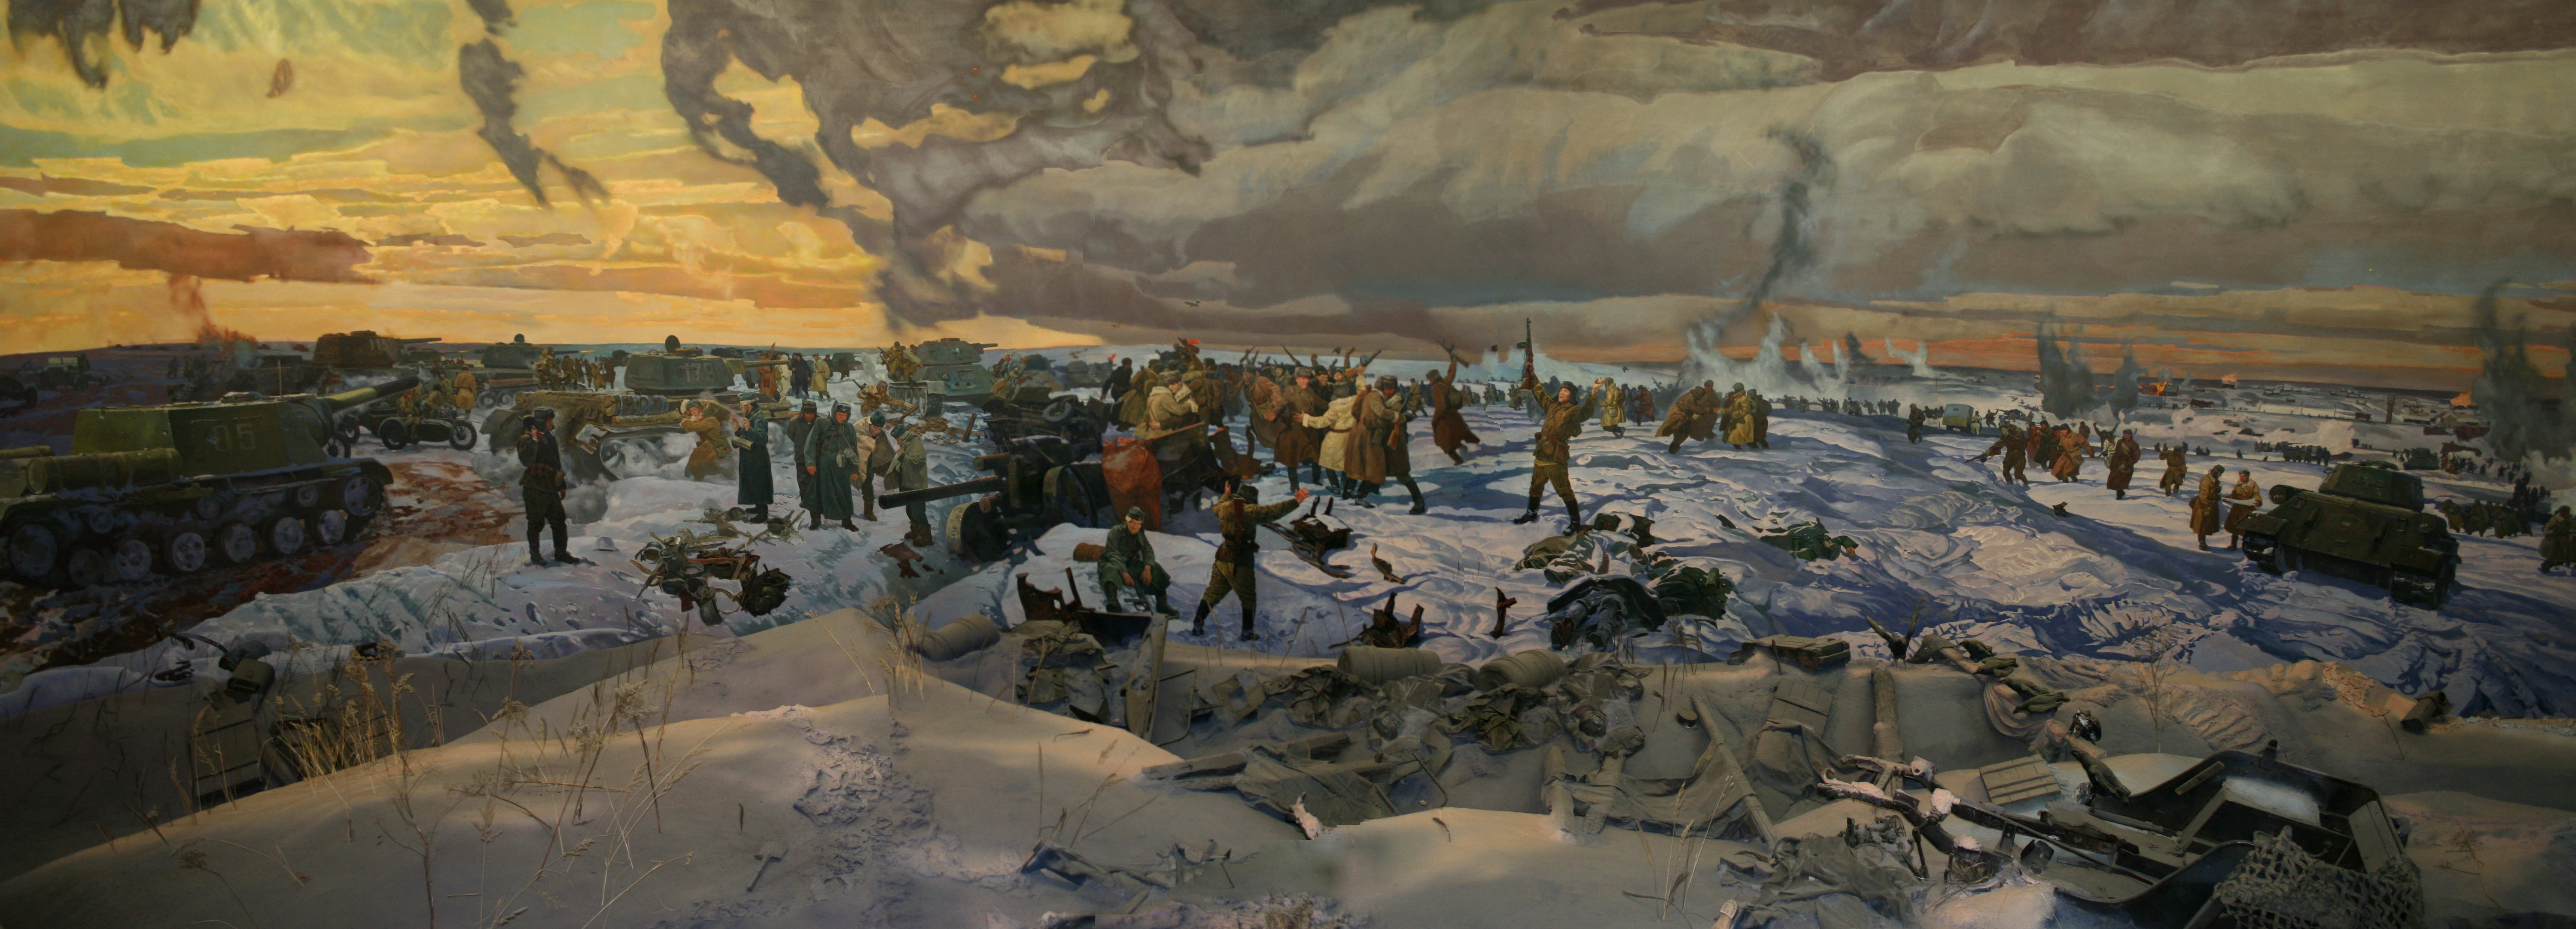 Credit: Volgograd State Panoramic Museum Stalingrad Battle